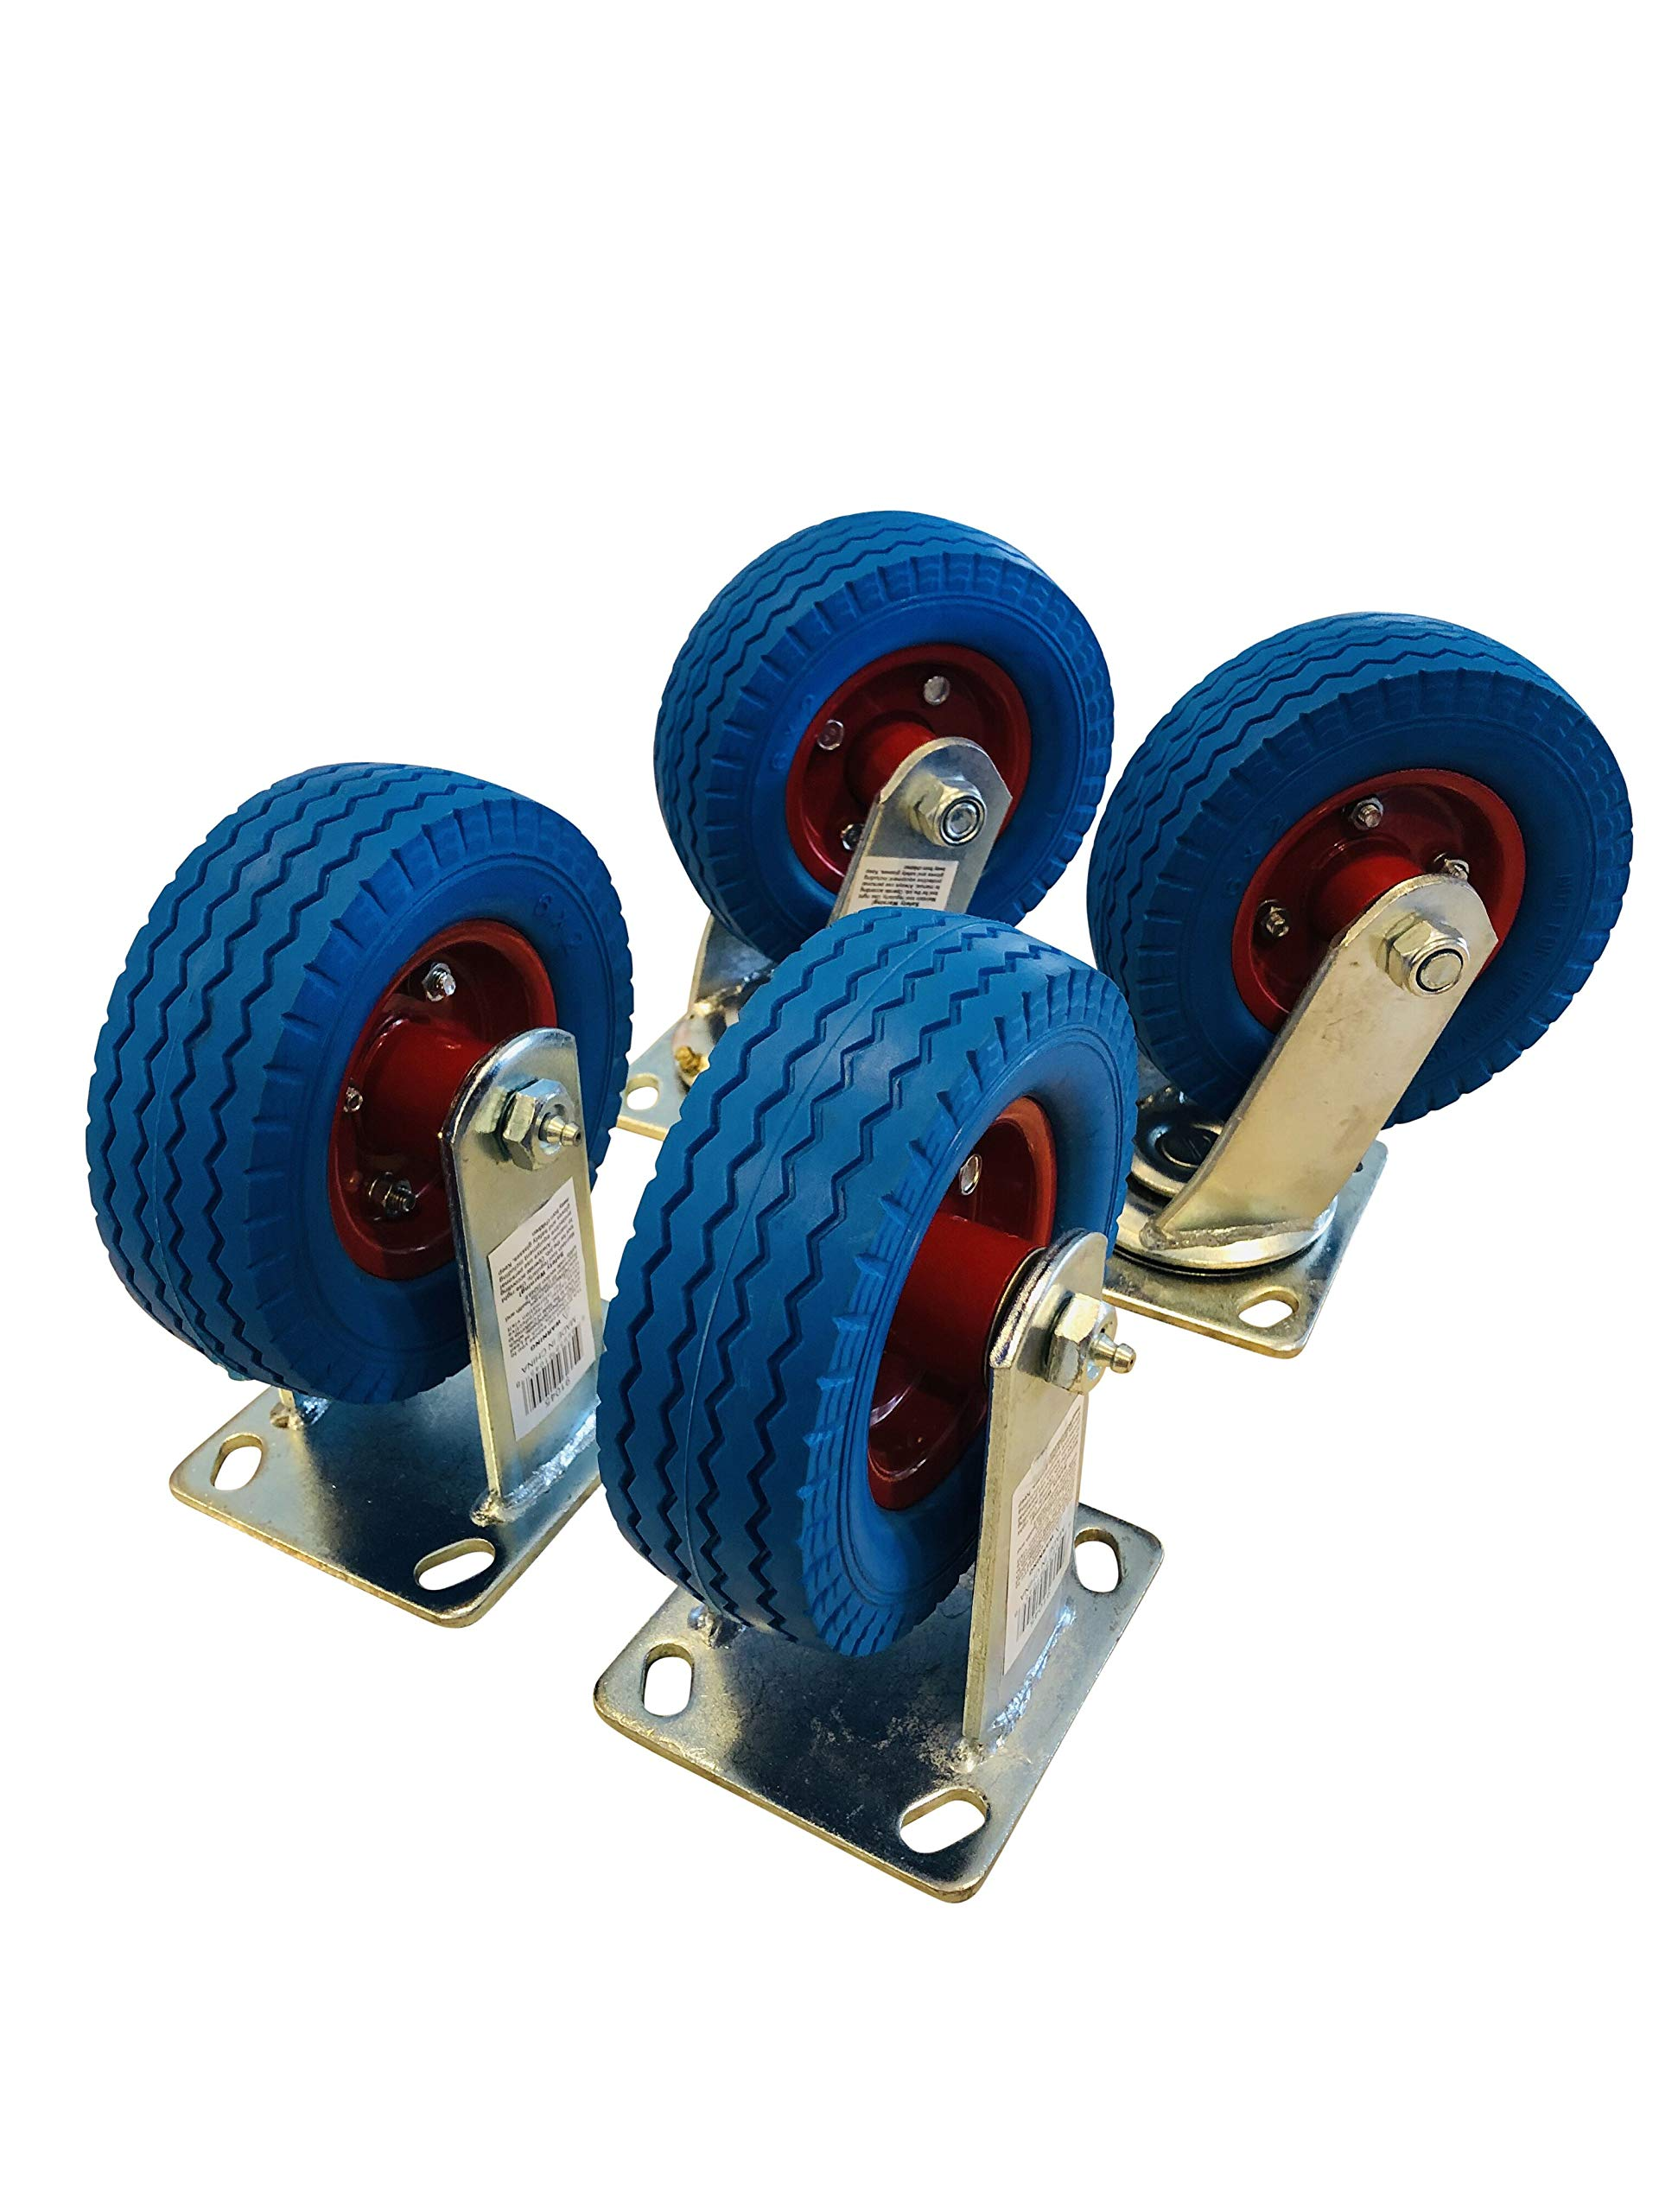 4-Pack of 6'' Flat Free Casters (2 Swivel and 2 Fixed)